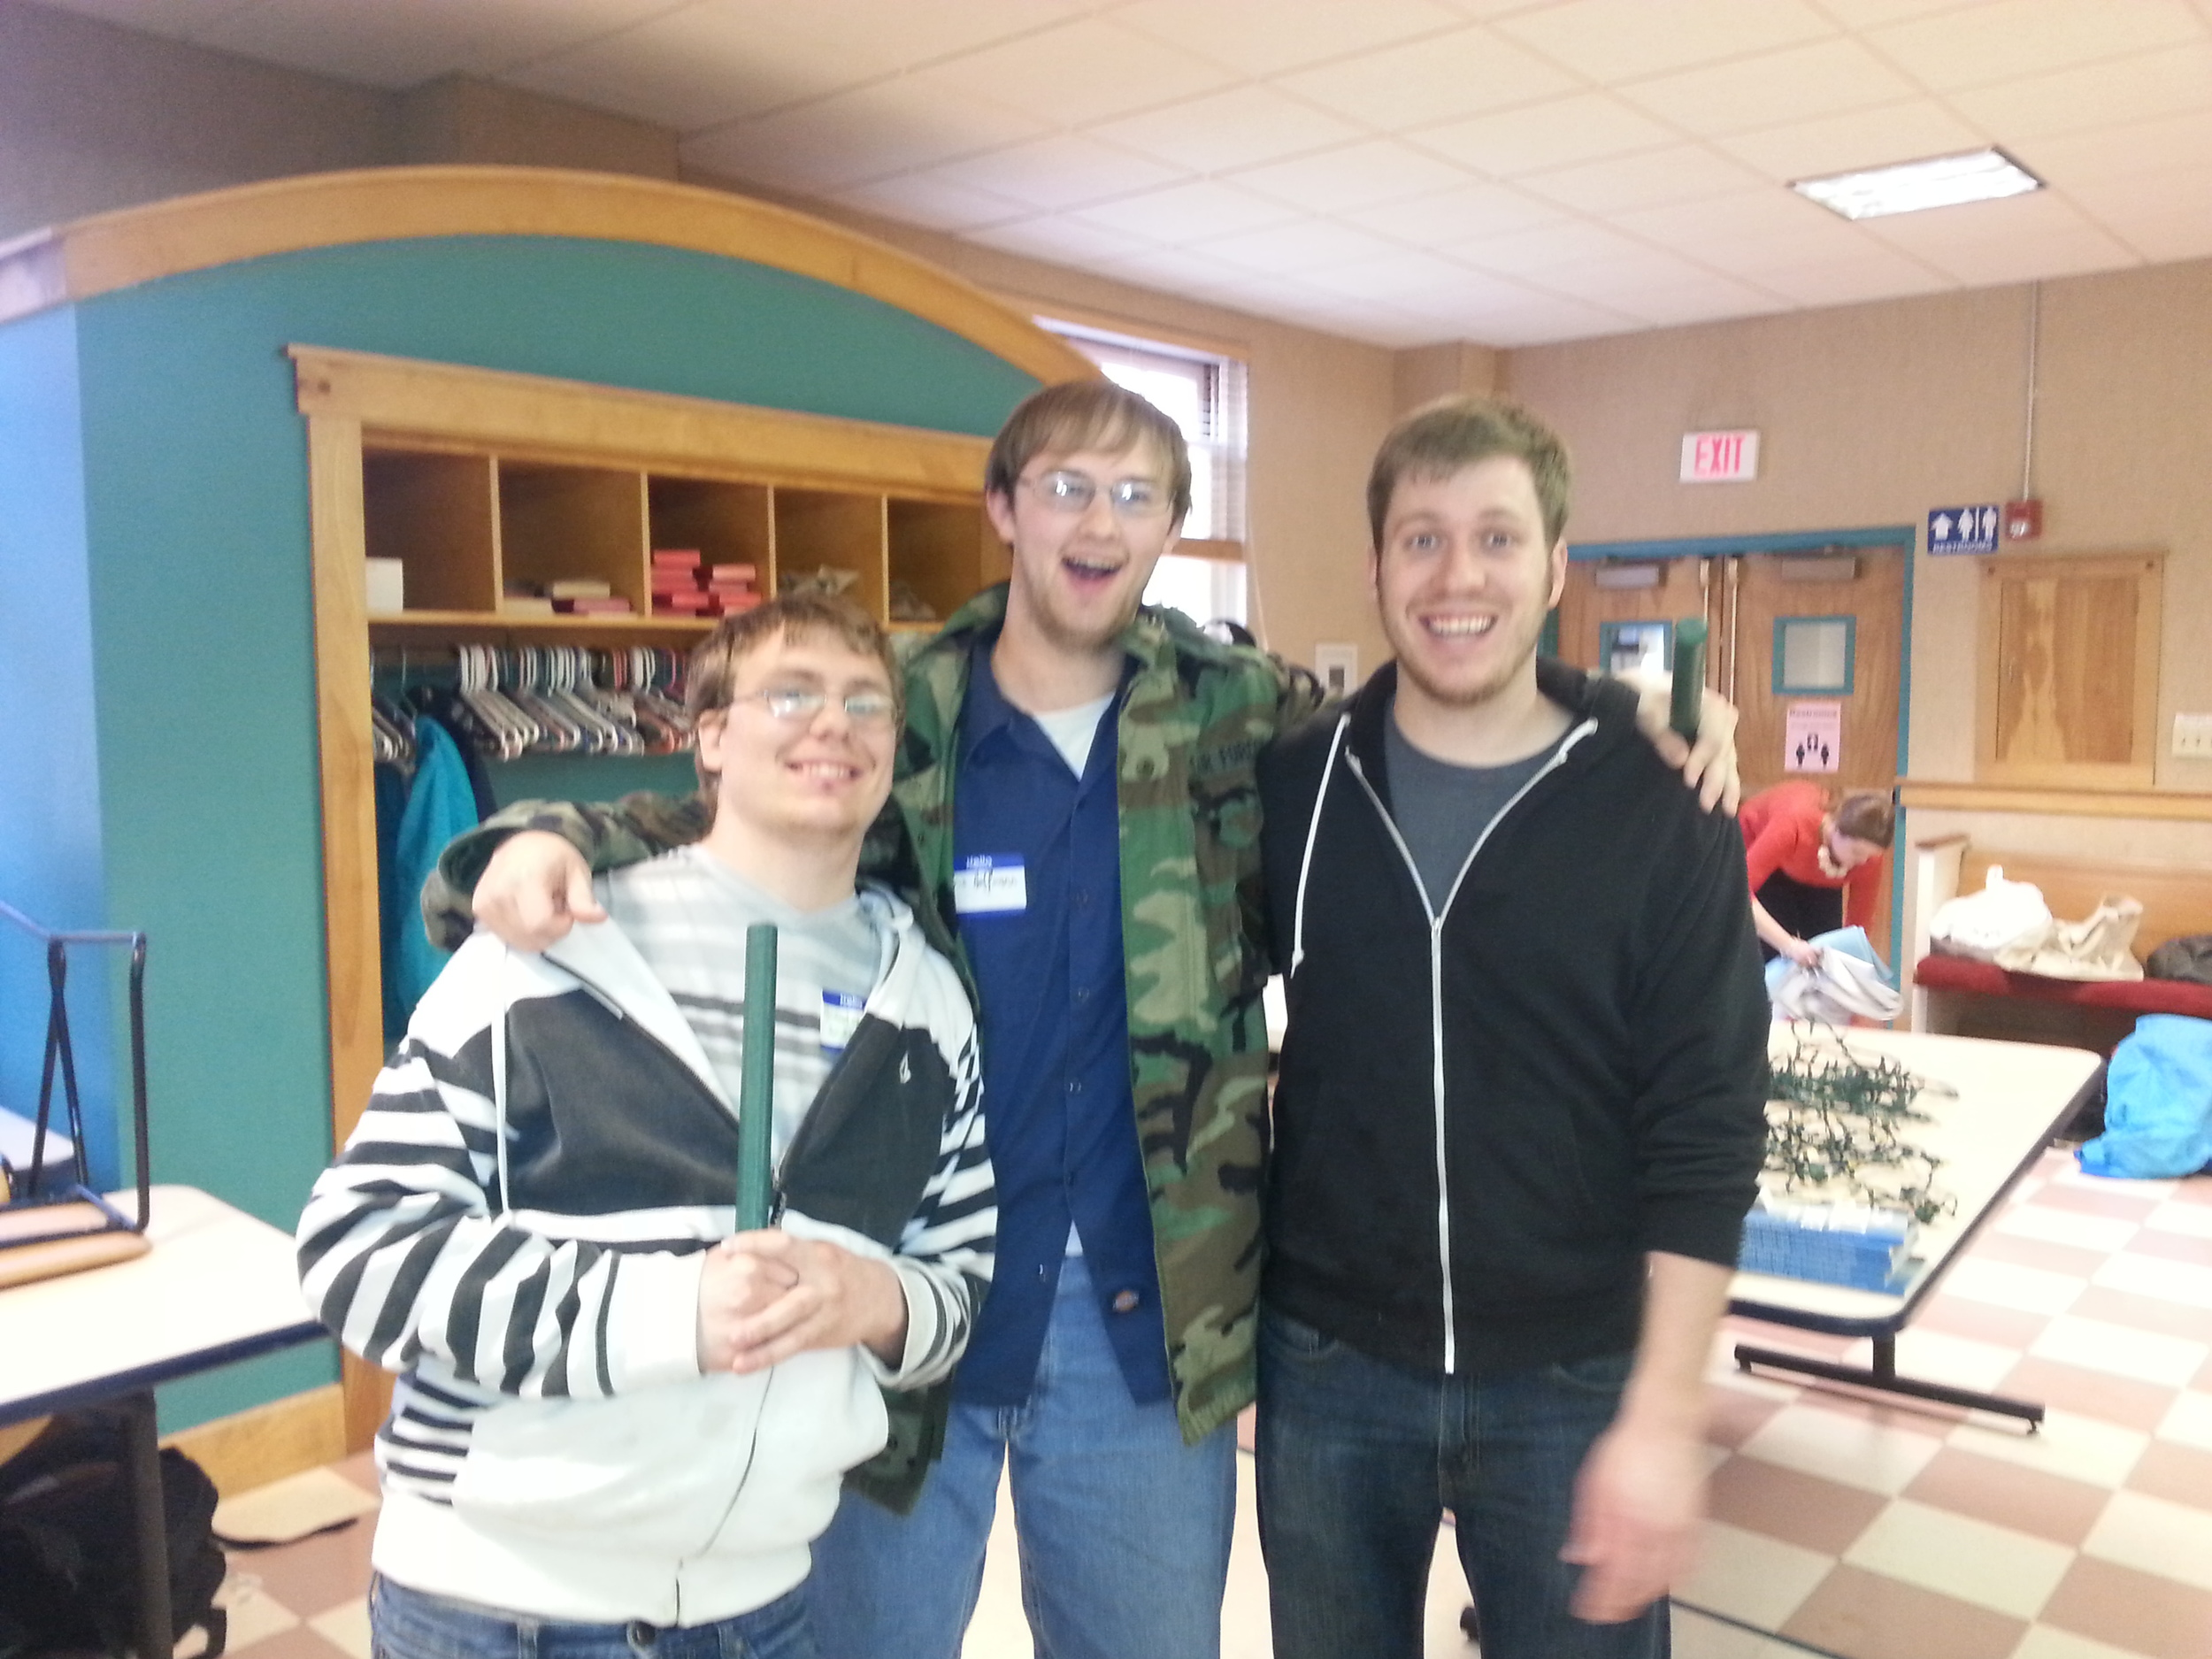 Clay (far right) with Chris (center) and Brandon, at a Cru event last year.